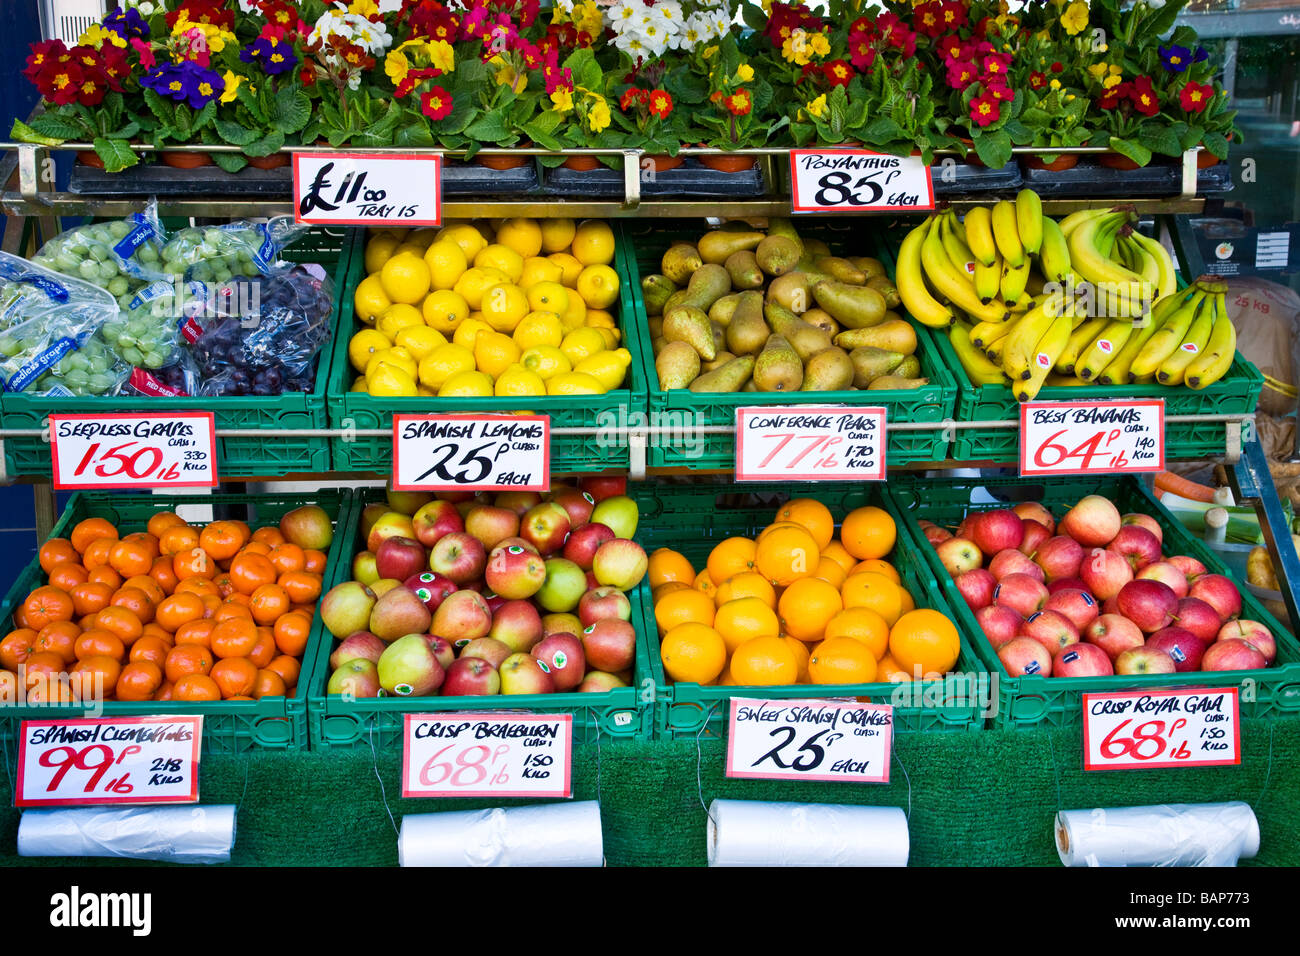 Fruit and Polyanthus bedding plants in tiered display outside a greengrocer shop or store in England UK - Stock Image